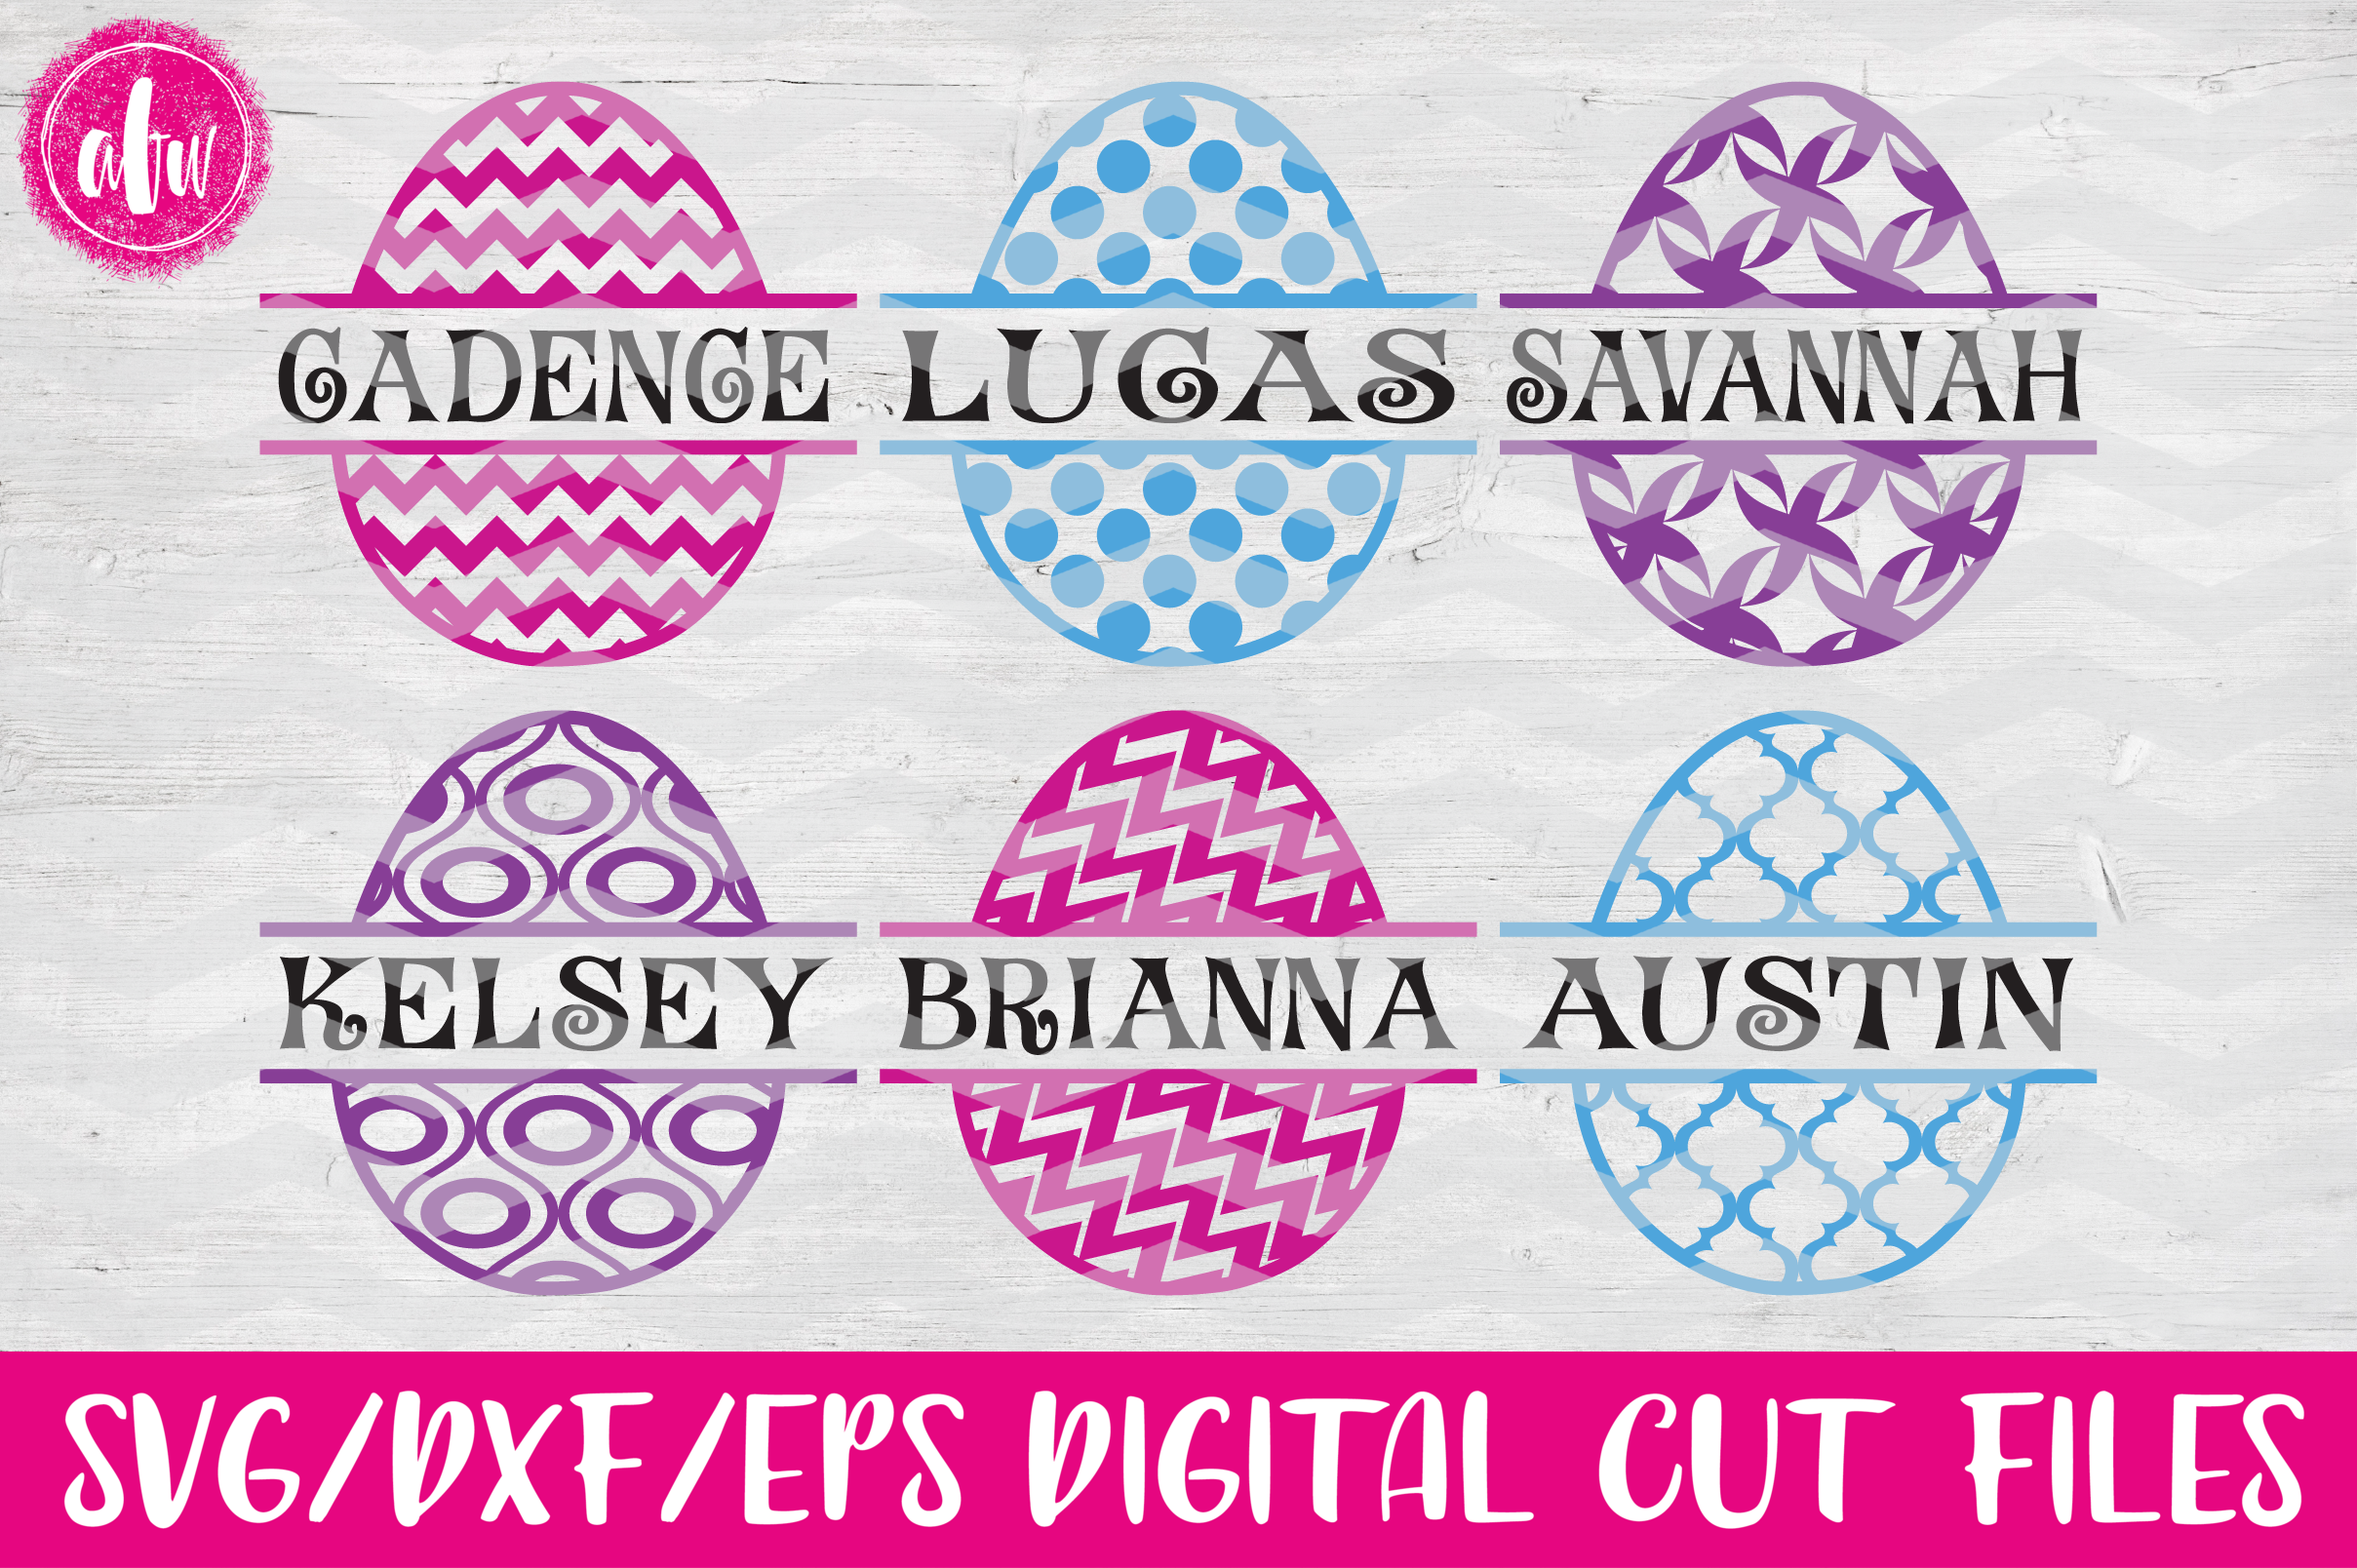 Split Pattern Easter Eggs Set - SVG, DXF, EPS Cut Files example image 1